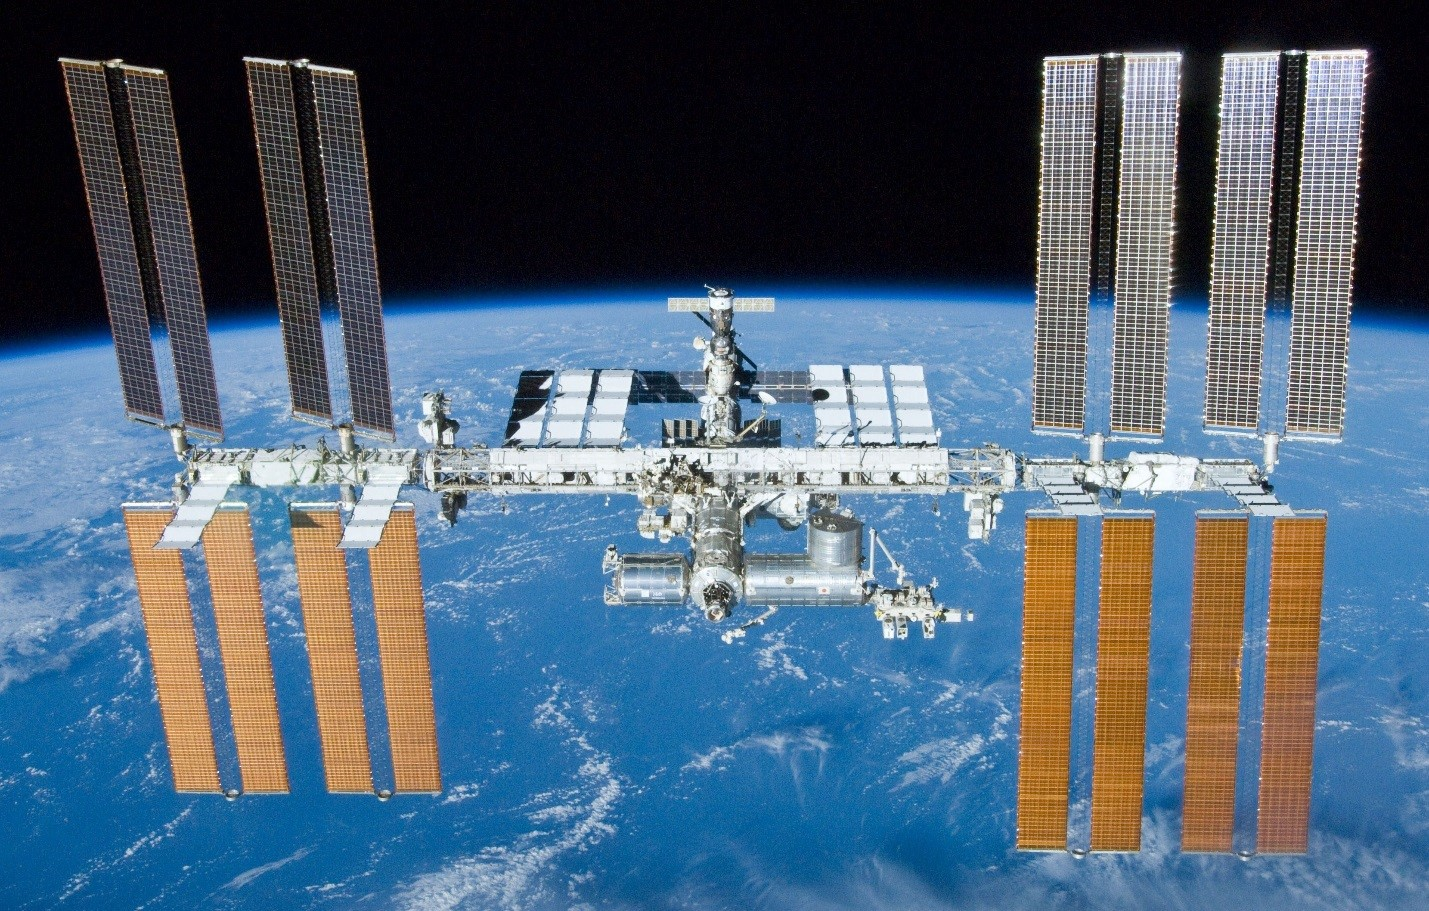 The role of the International Space Station in the commercialization of space